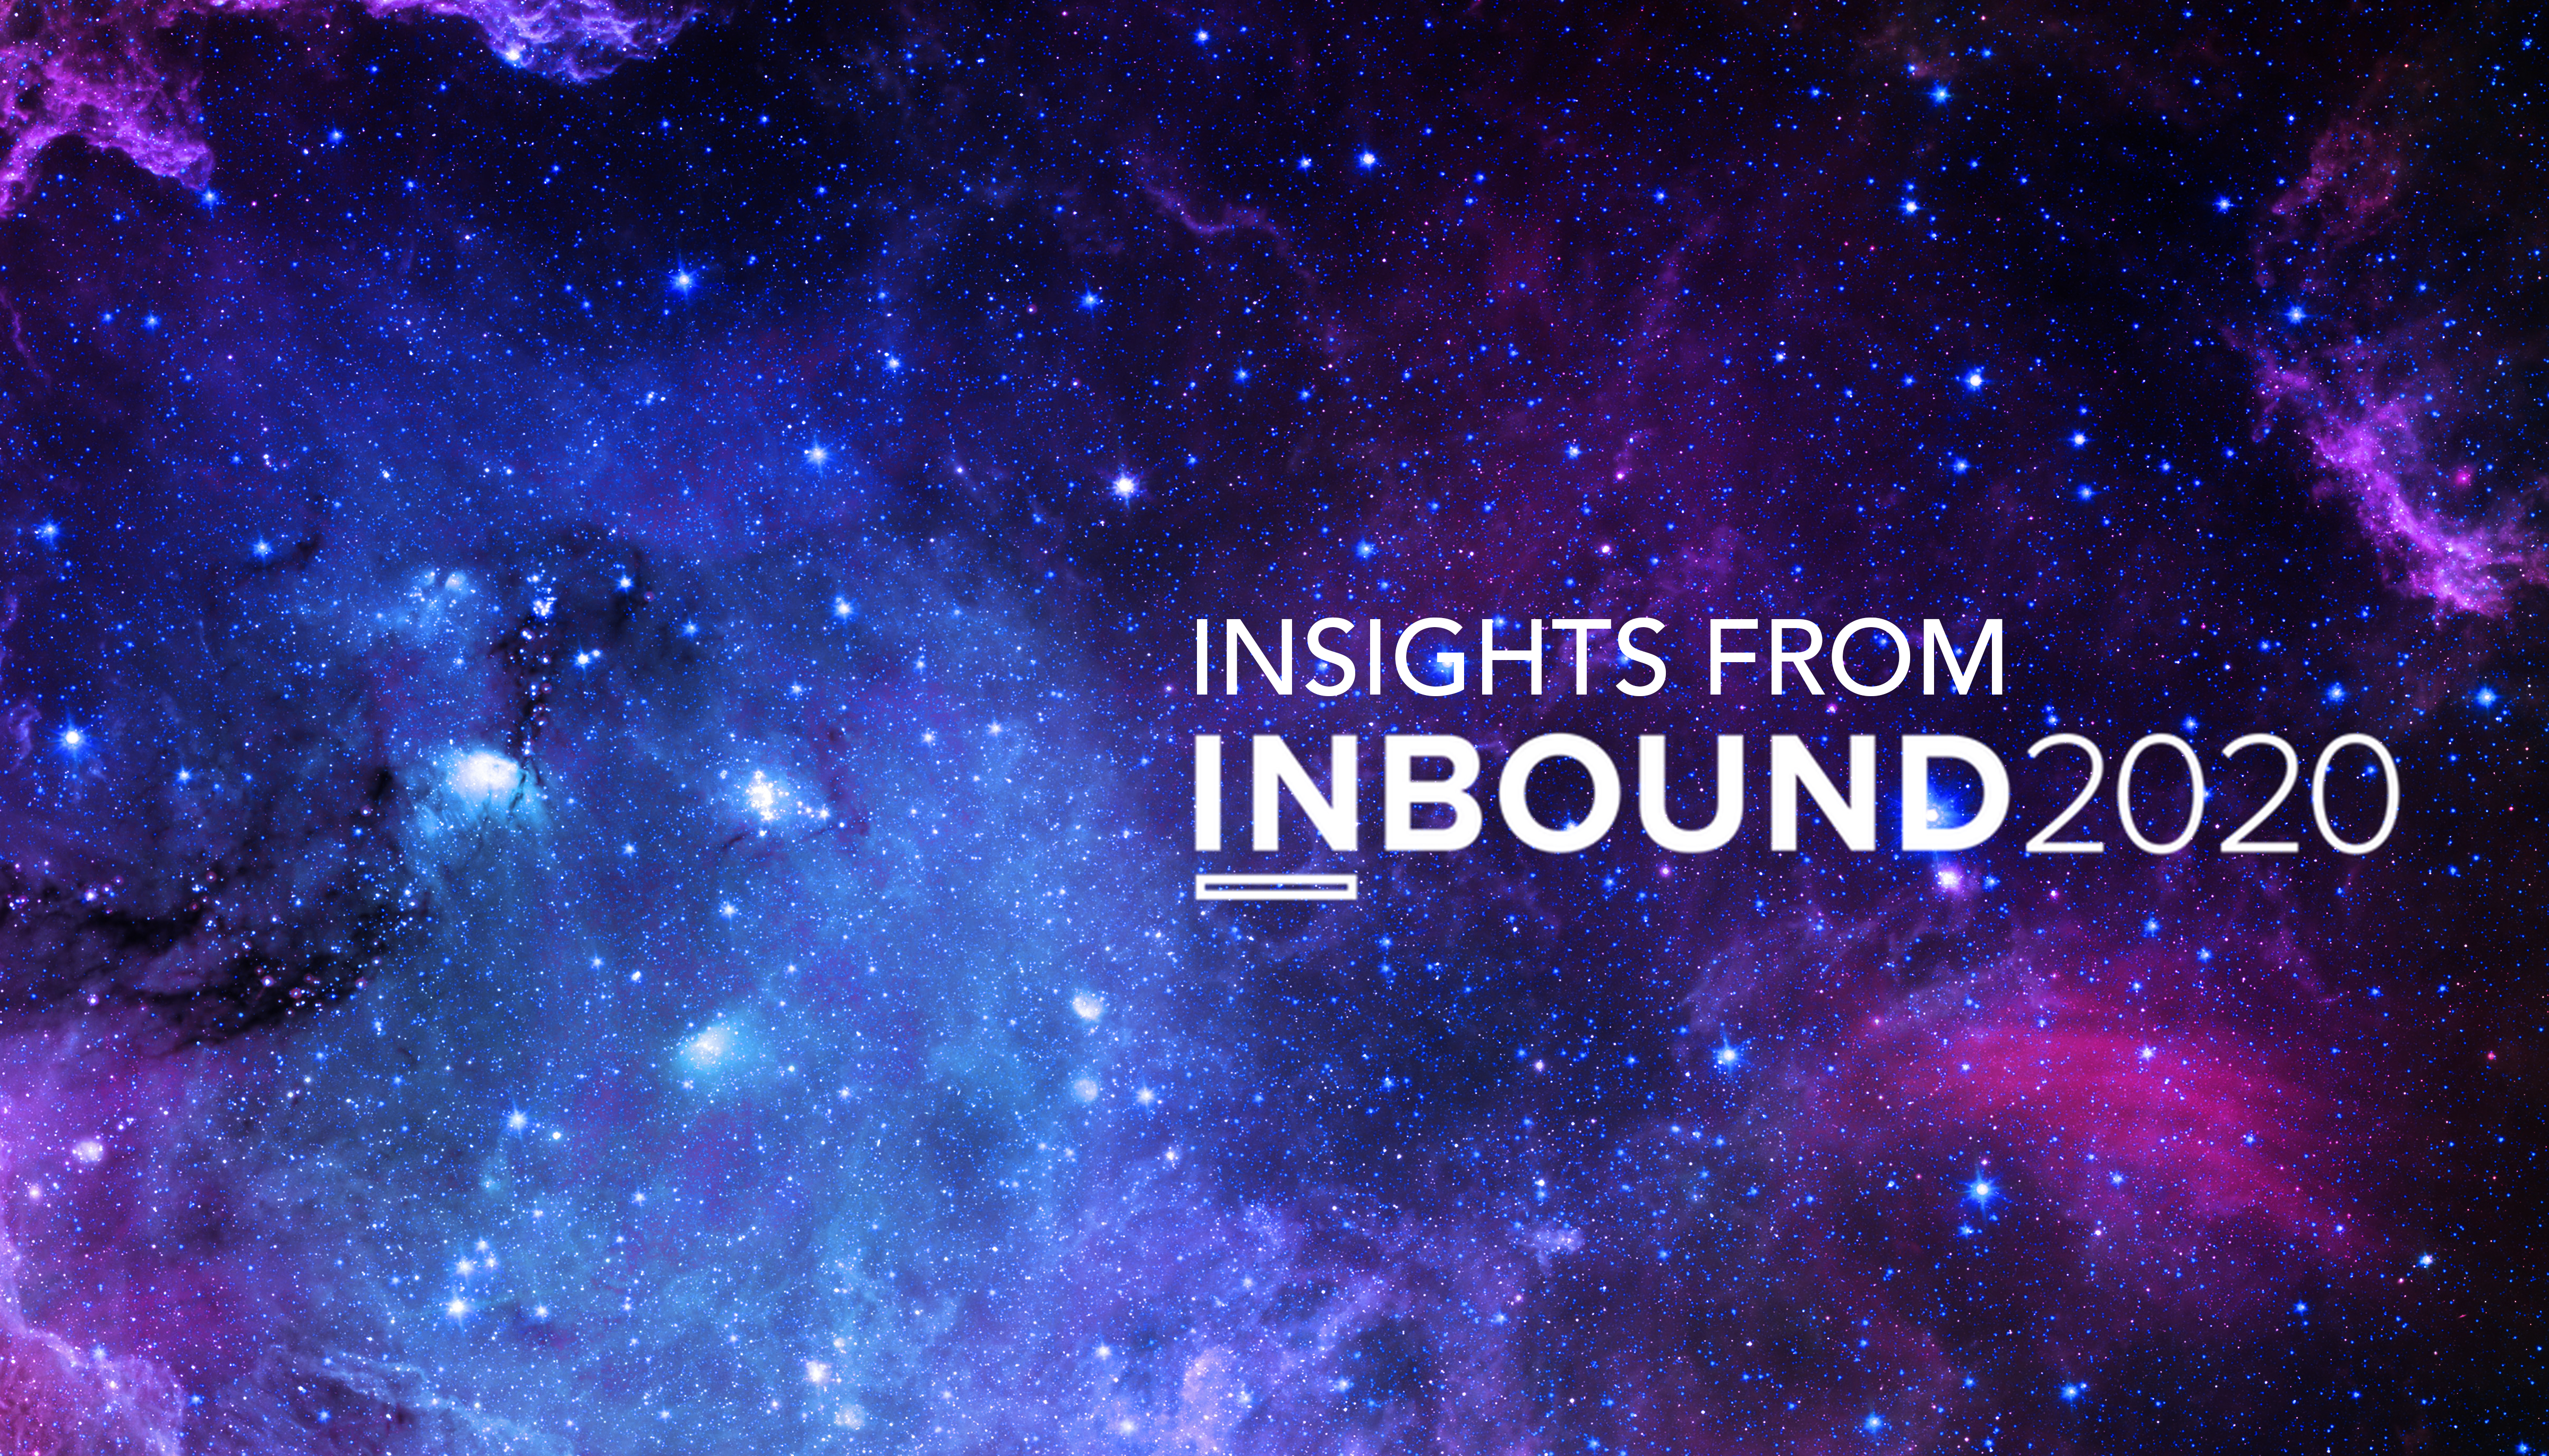 Our top marketing, sales and business insights from Inbound 2020